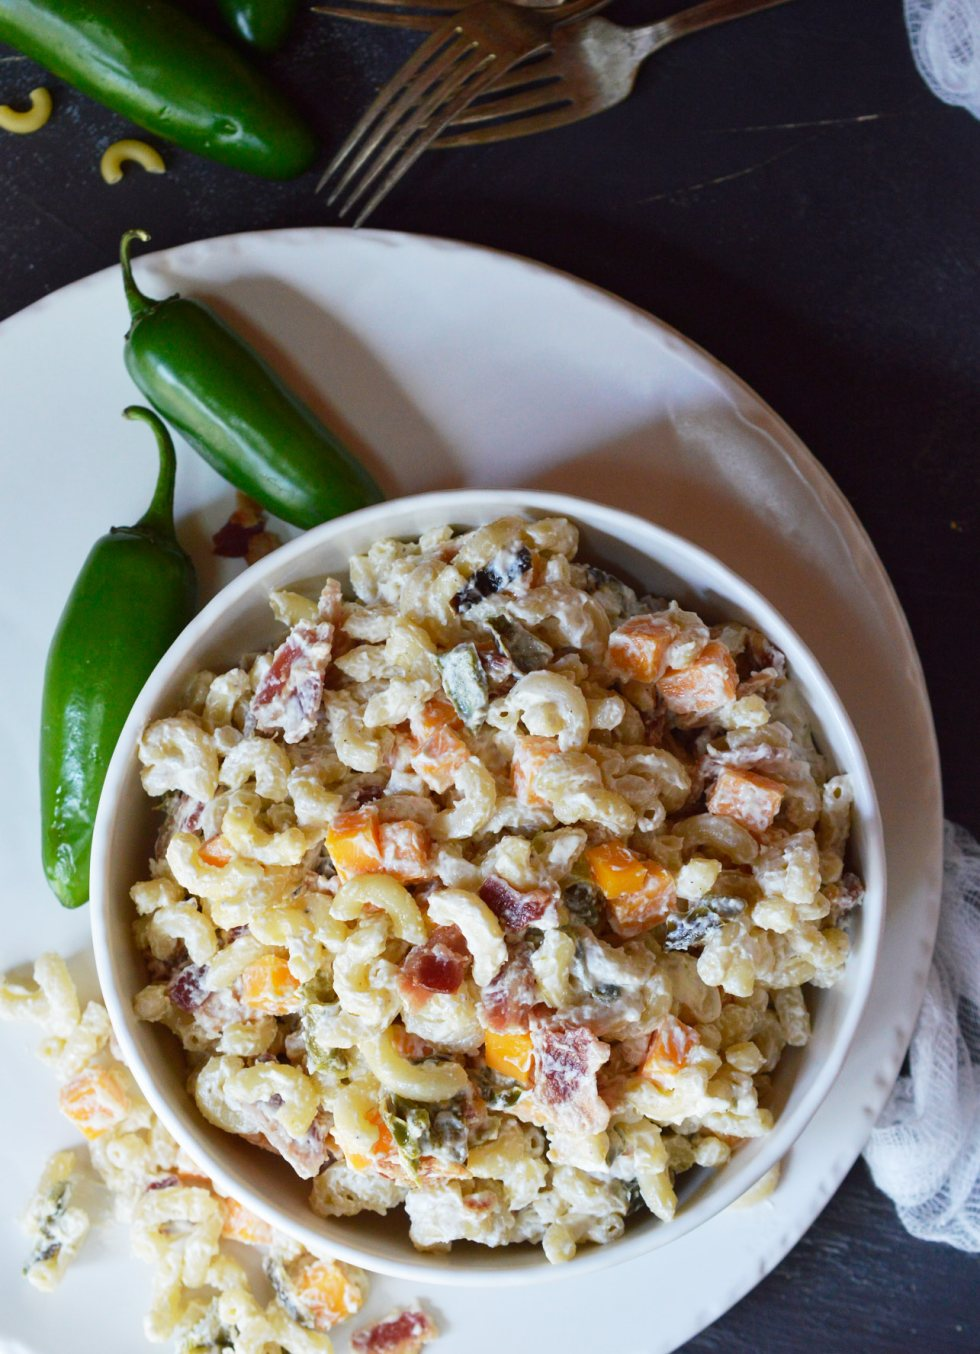 Just in time for barbecue season, this Jalapeño Popper Macaroni Salad Recipe makes a fantastic side dish! Your favorite pasta salad made with cheddar, bacon and roasted jalapeños for a fun twist. Pack it up in your branded Koozie® Grocery Tote Kooler and take the family on a picnic.